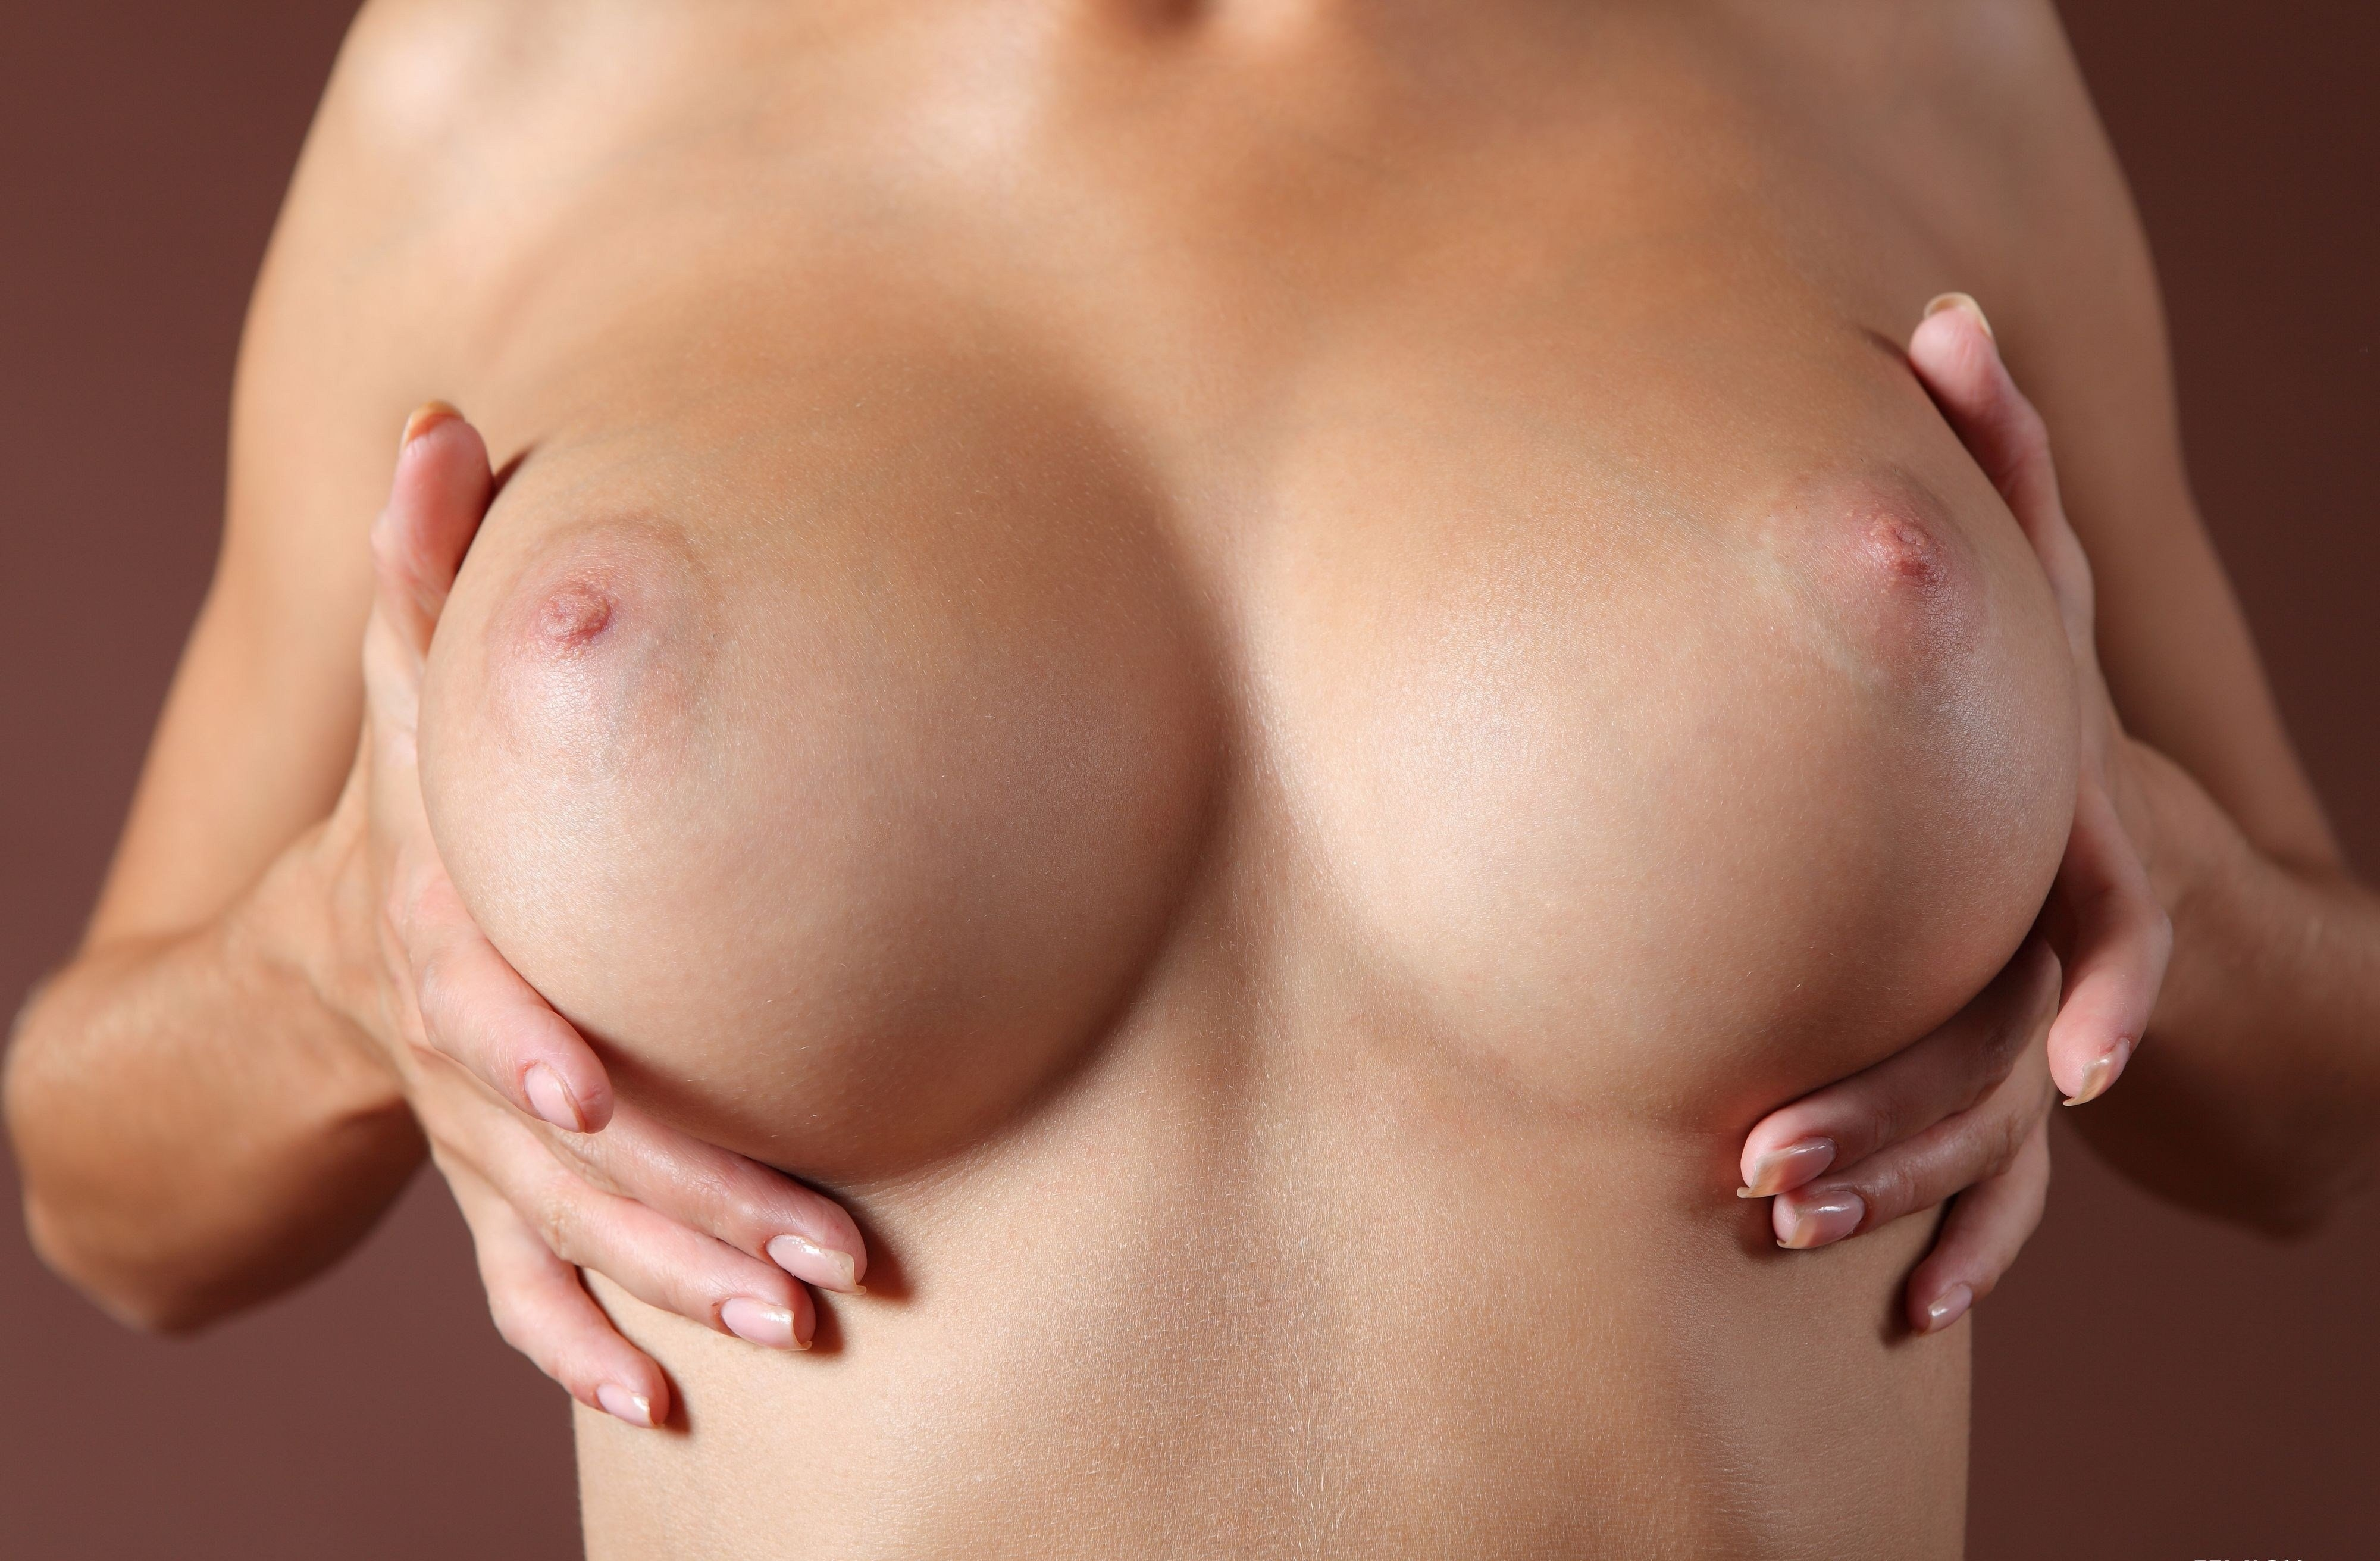 Images of naked breasts